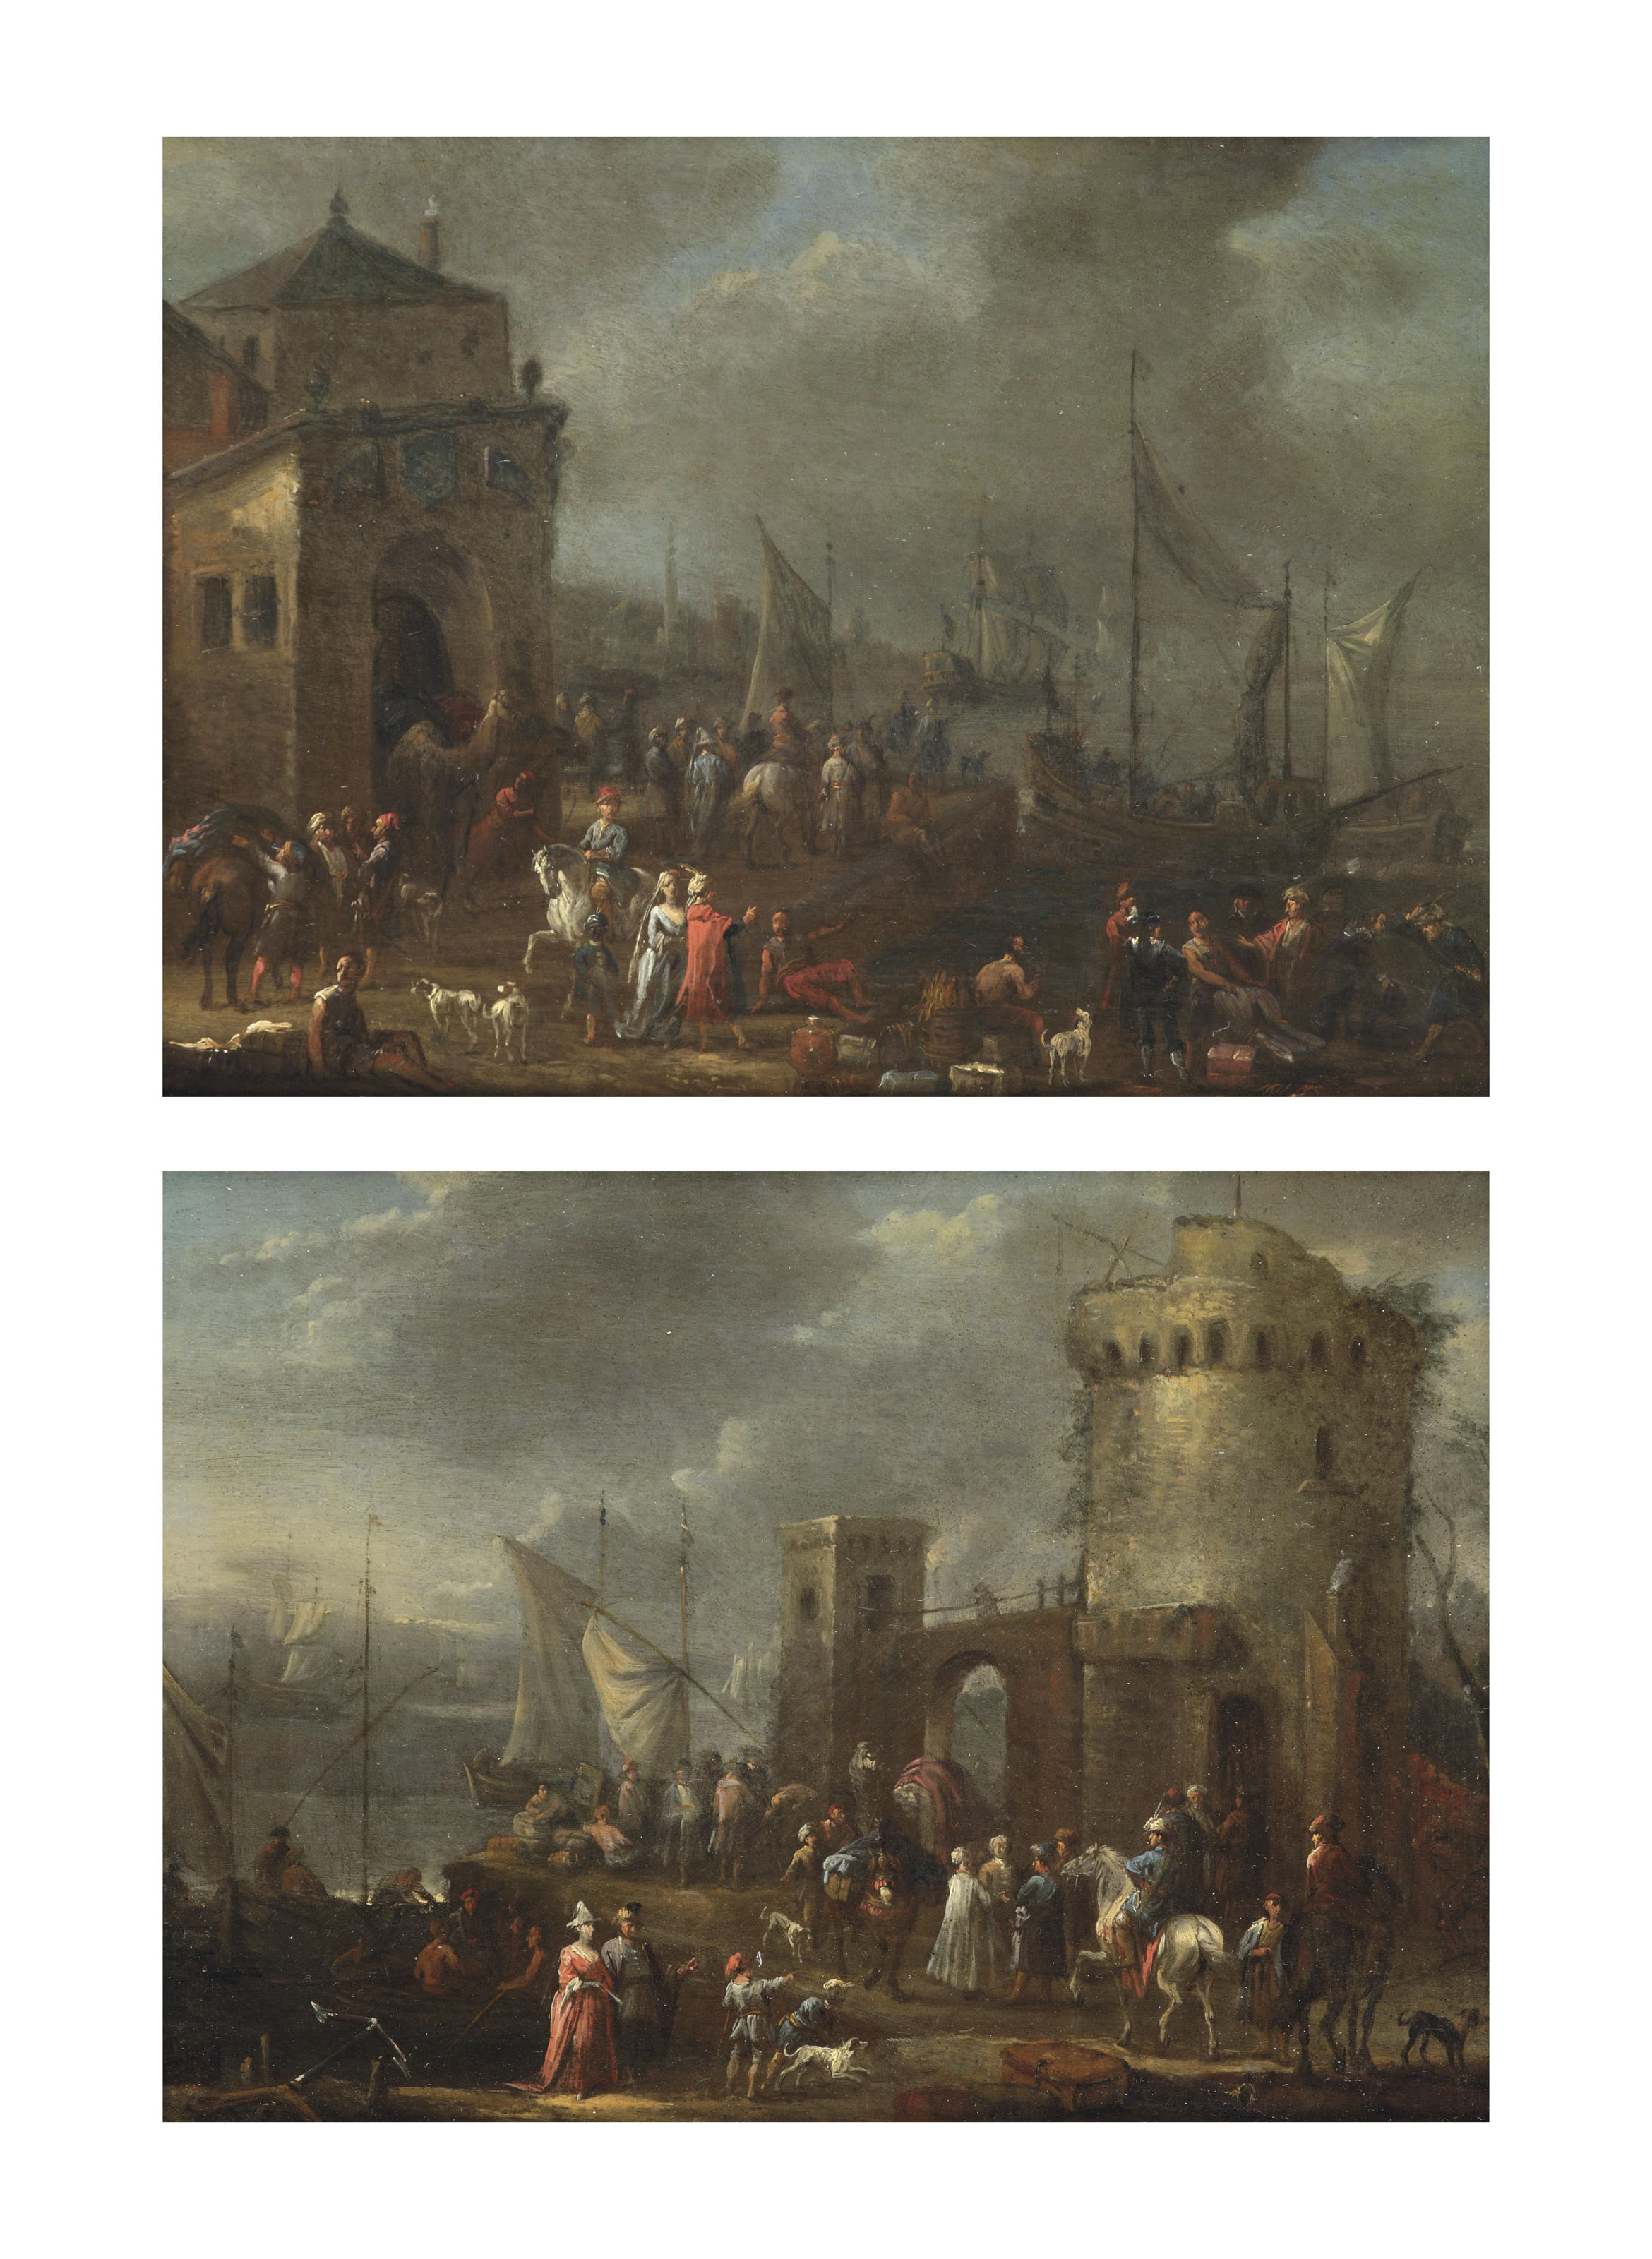 A harbour 'capriccio' with numerous figures; and A coastal landscape with numerous figures near a tower